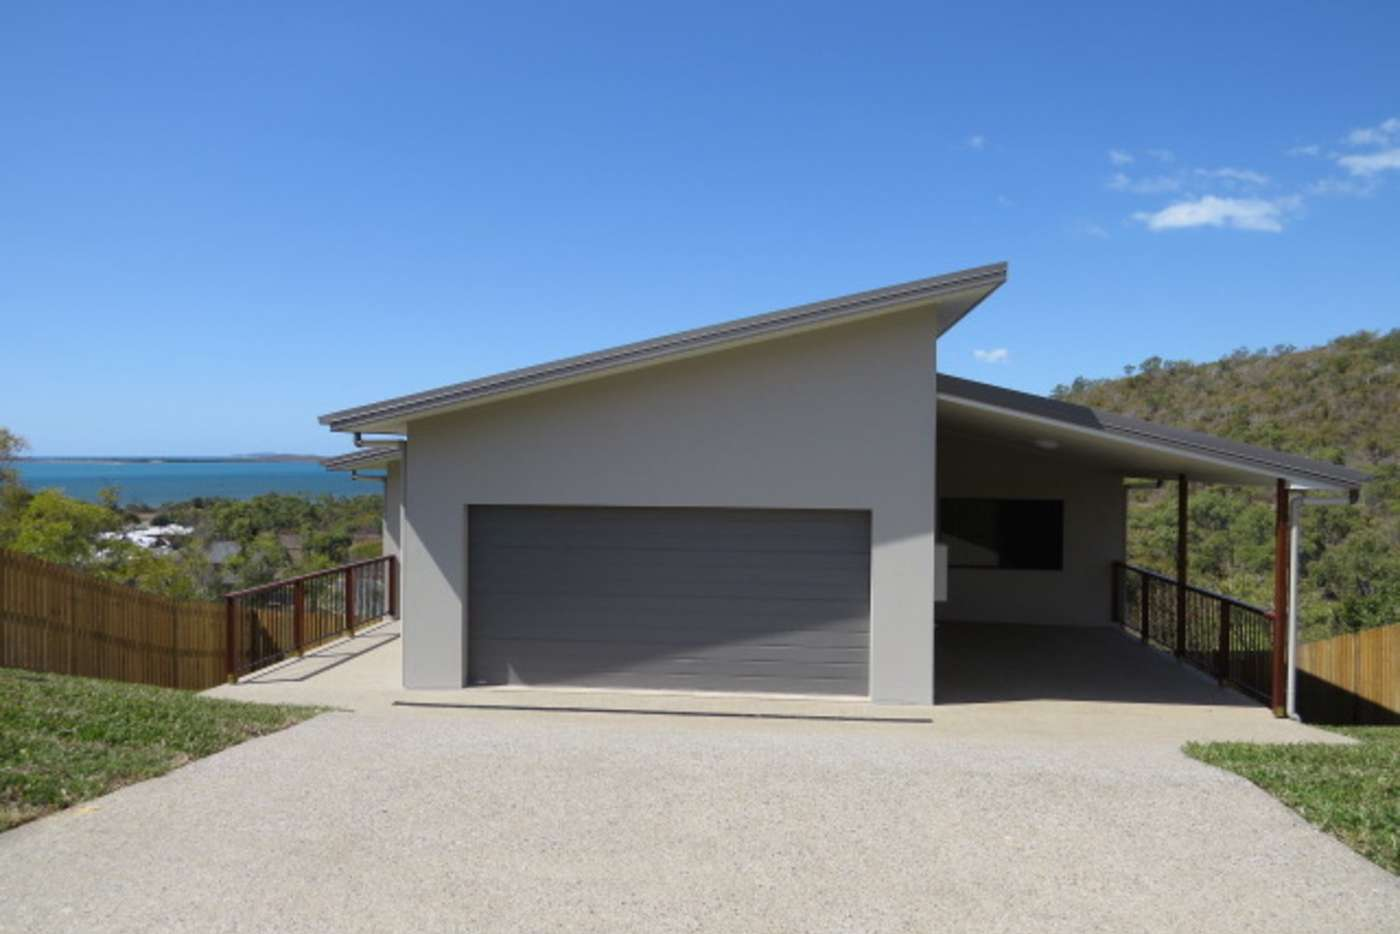 Main view of Homely house listing, 20 Grandview Terrace, Bowen QLD 4805